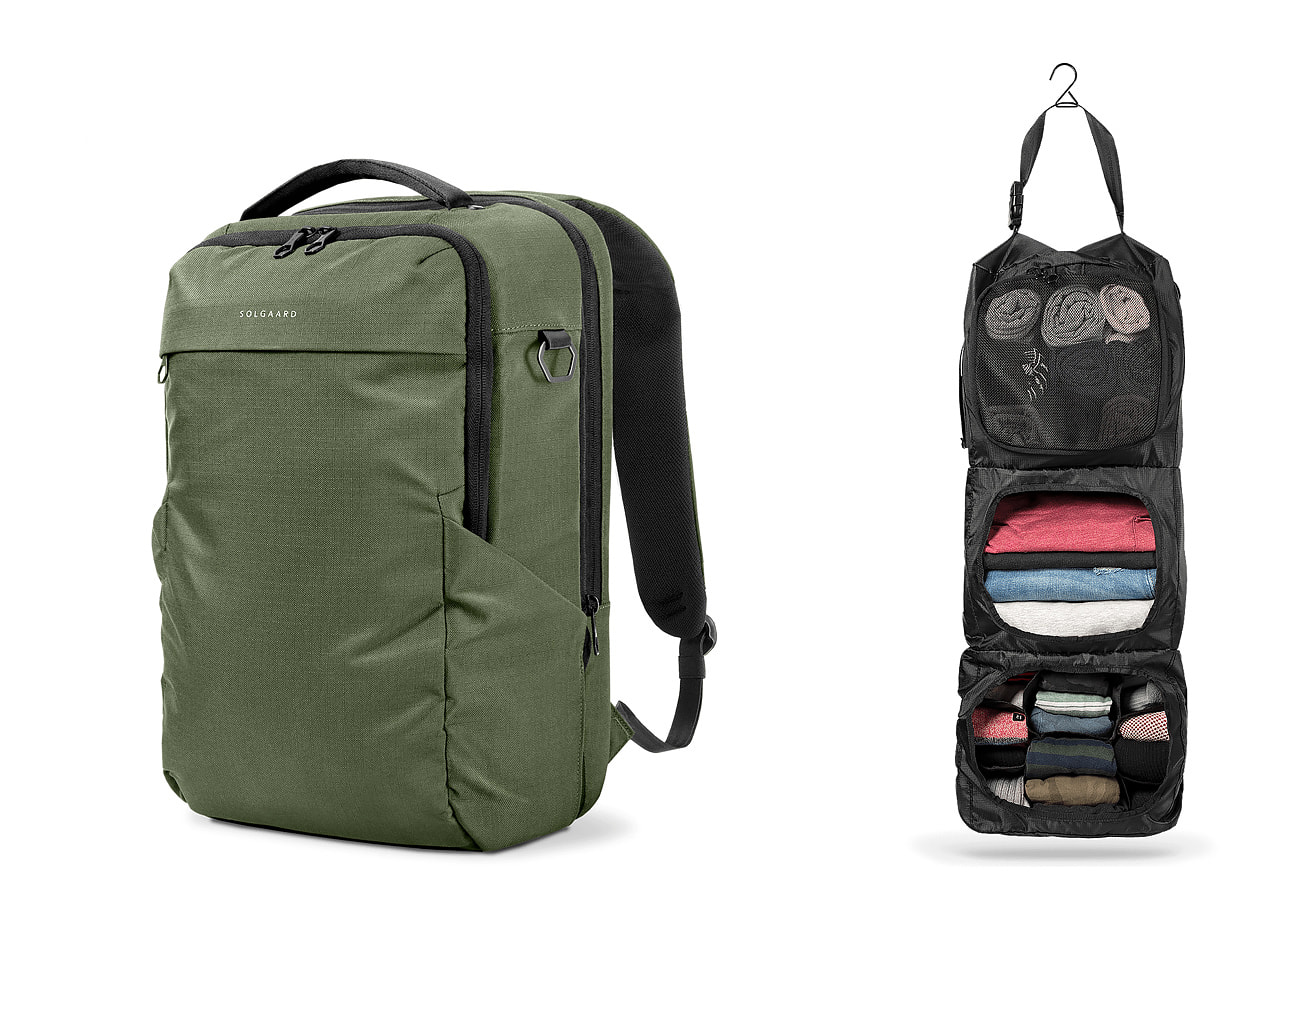 Travel backpack with closet